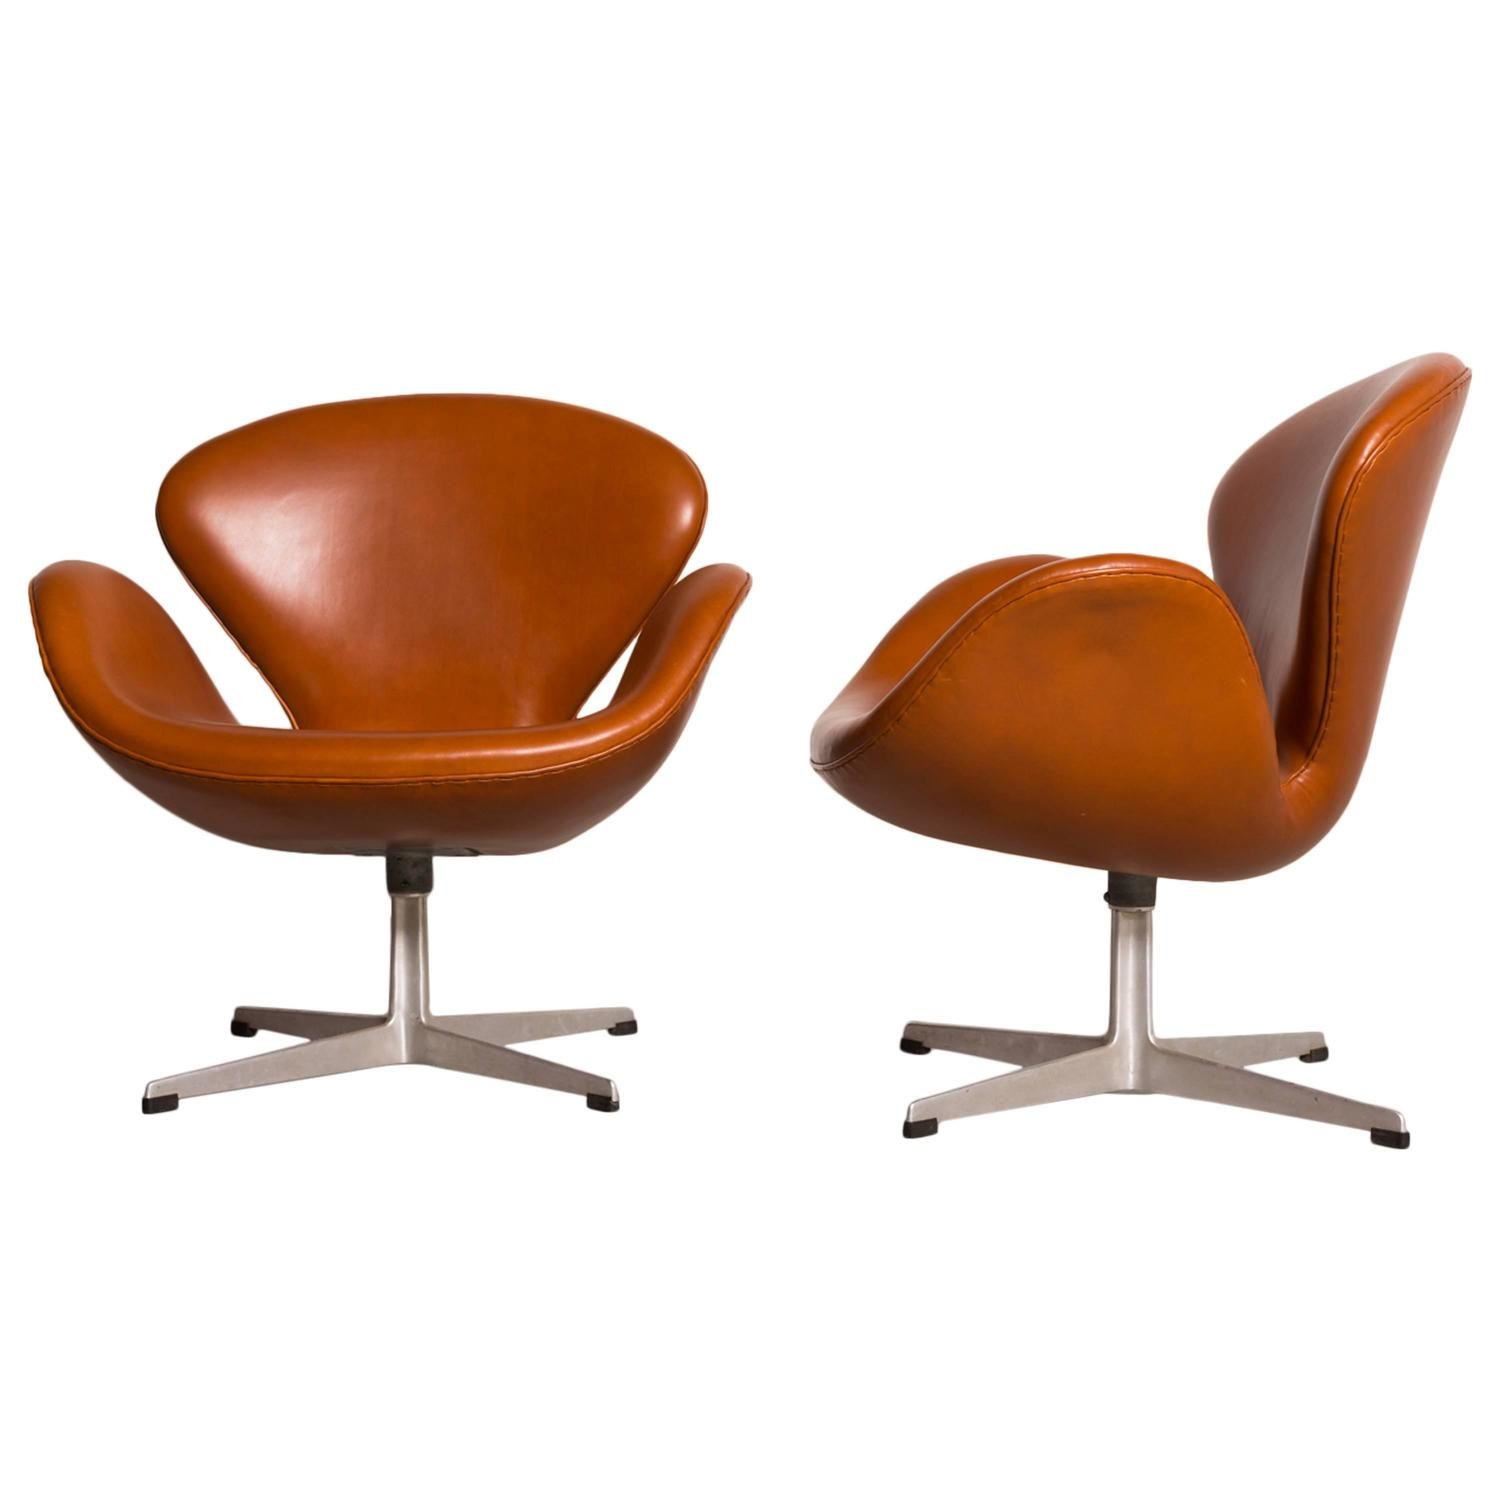 early arne jacobsen swan chairs for sale at 1stdibs. Black Bedroom Furniture Sets. Home Design Ideas